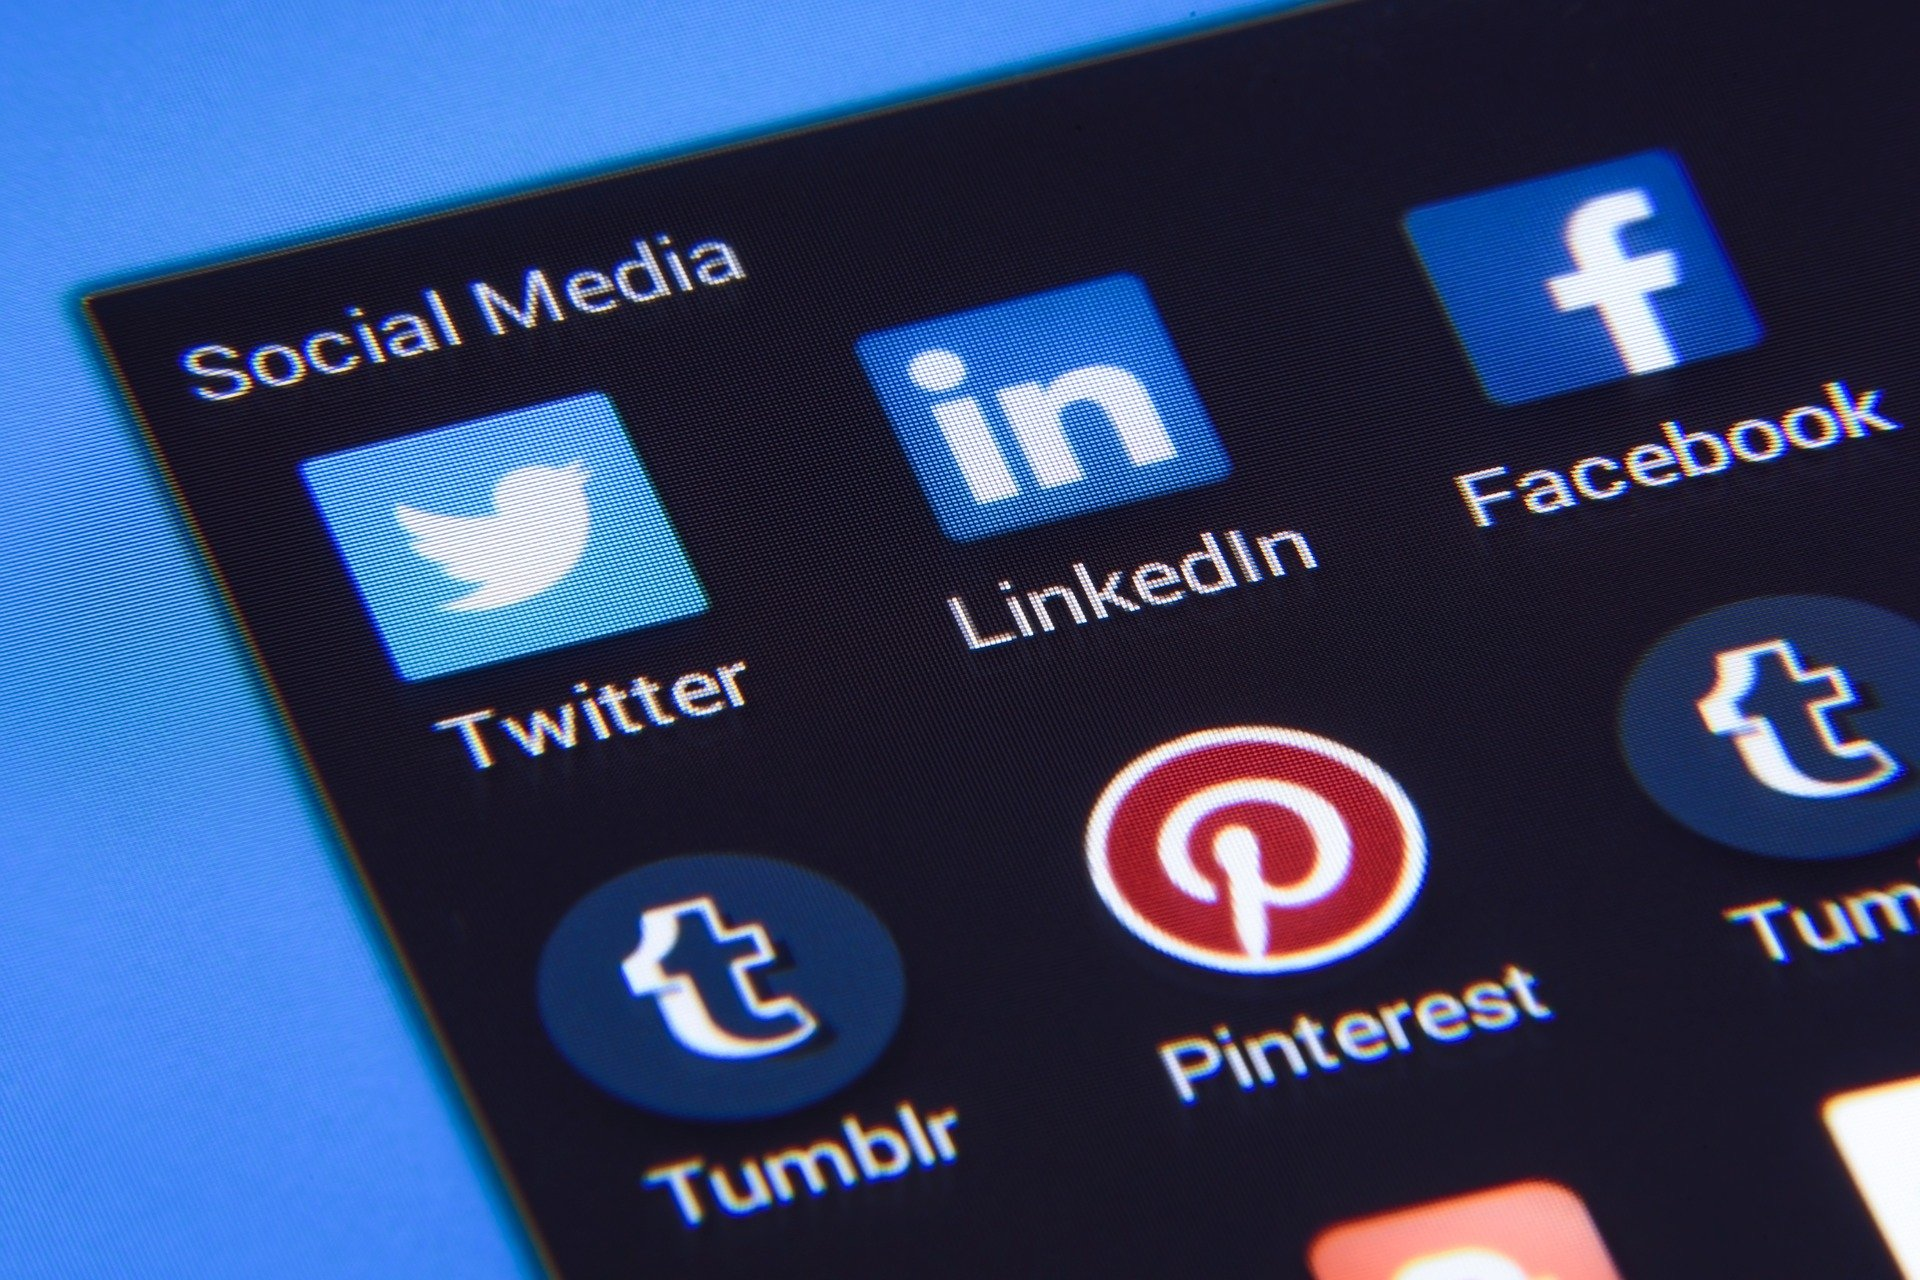 Why Social Media is important for your business growth?